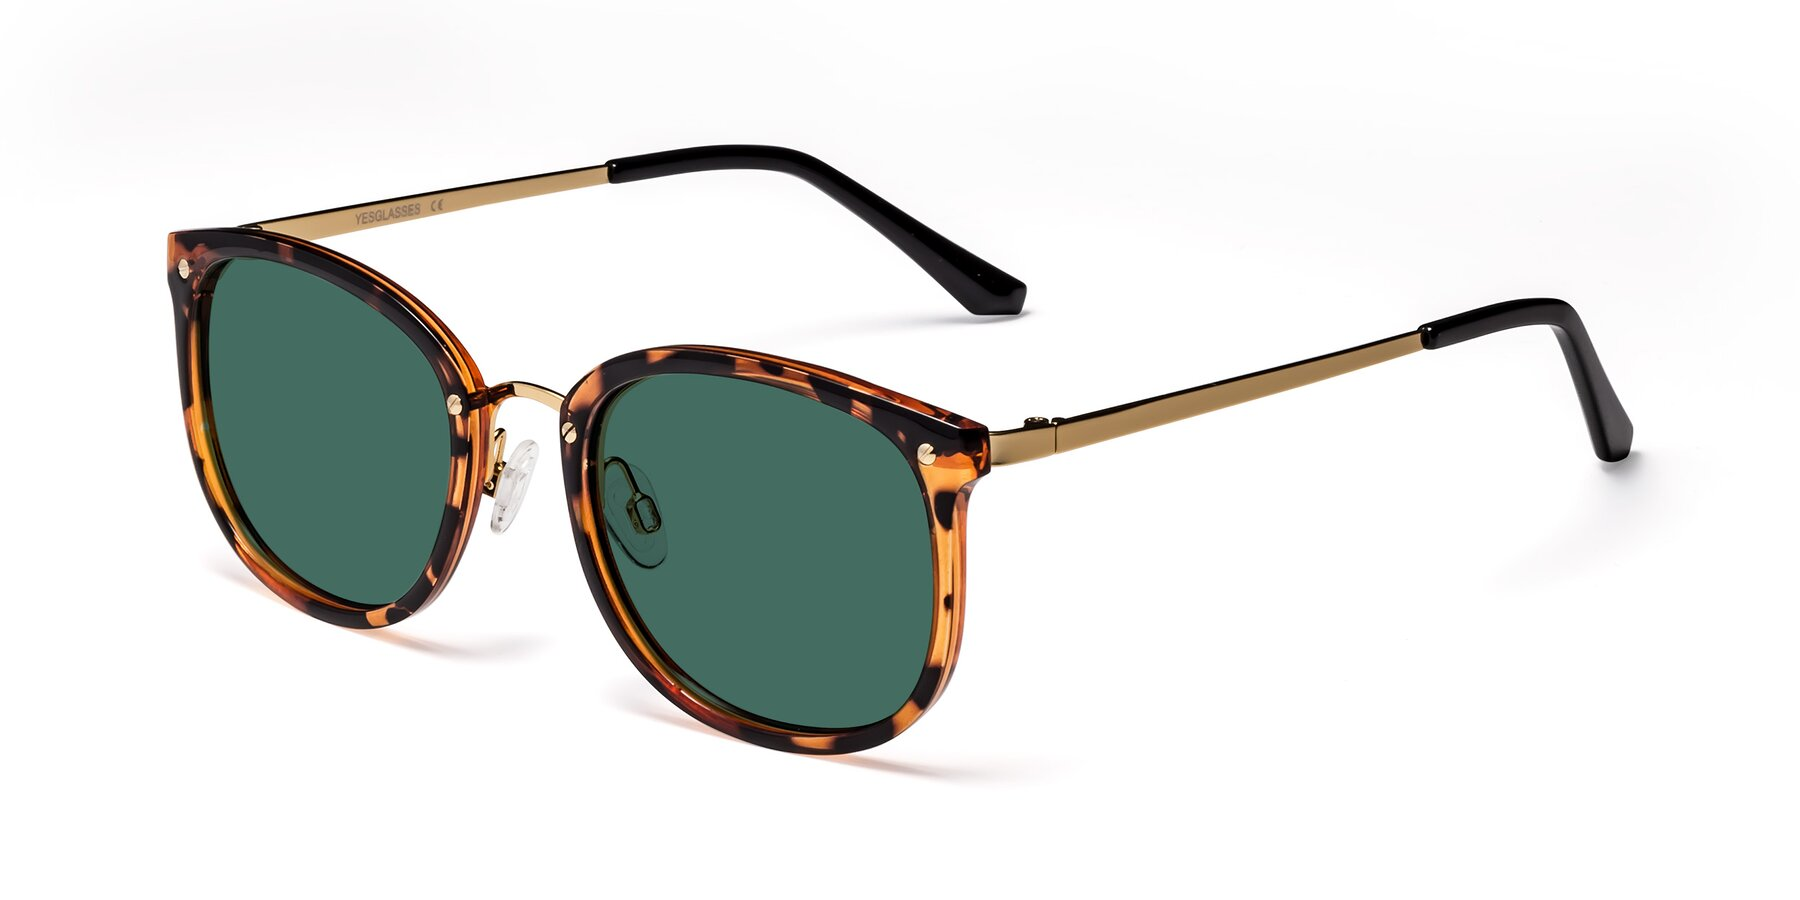 Angle of Timeless in Tortoise-Golden with Green Polarized Lenses